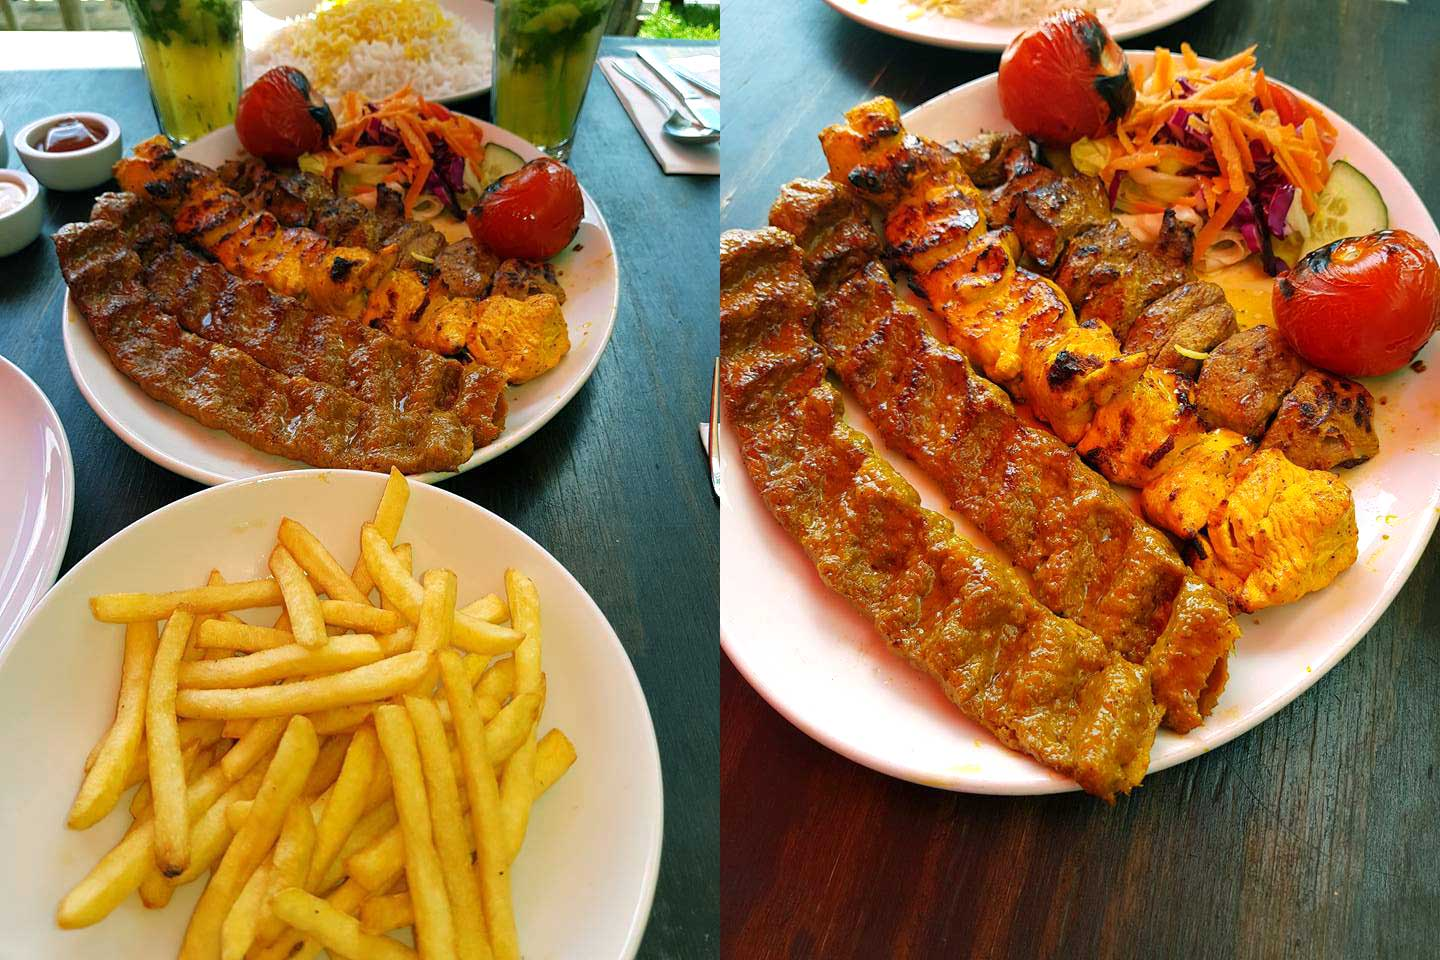 narenj-persian-kingston-mixed-grill - feed the lion